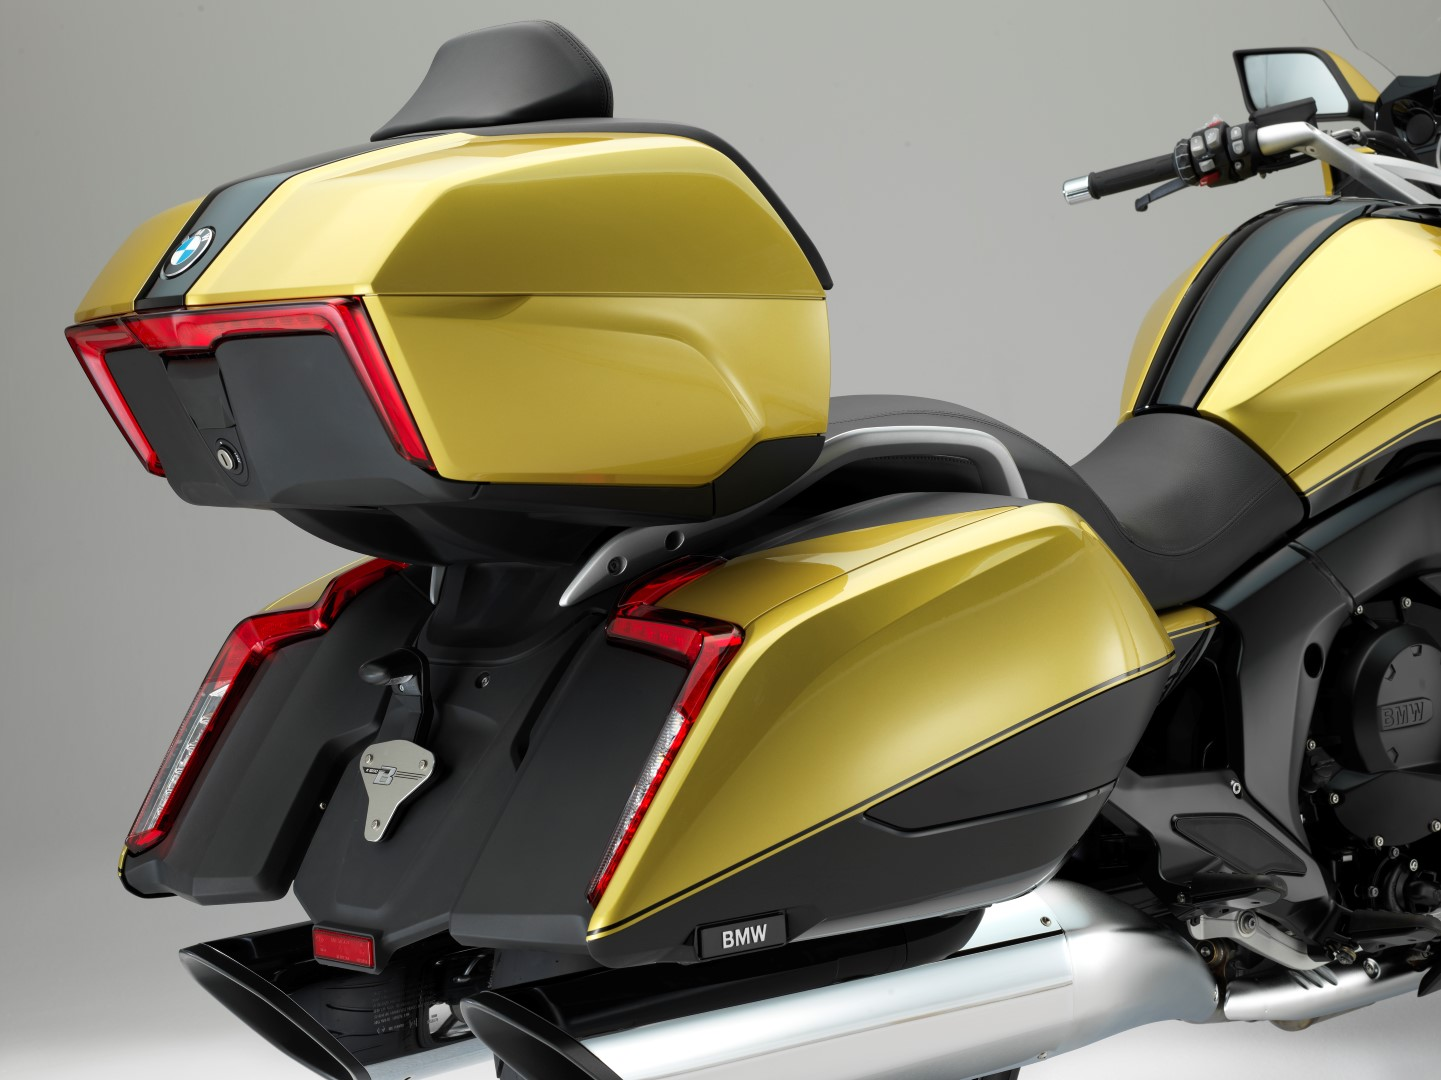 BMW K 1600 Grand America 2018, fotos